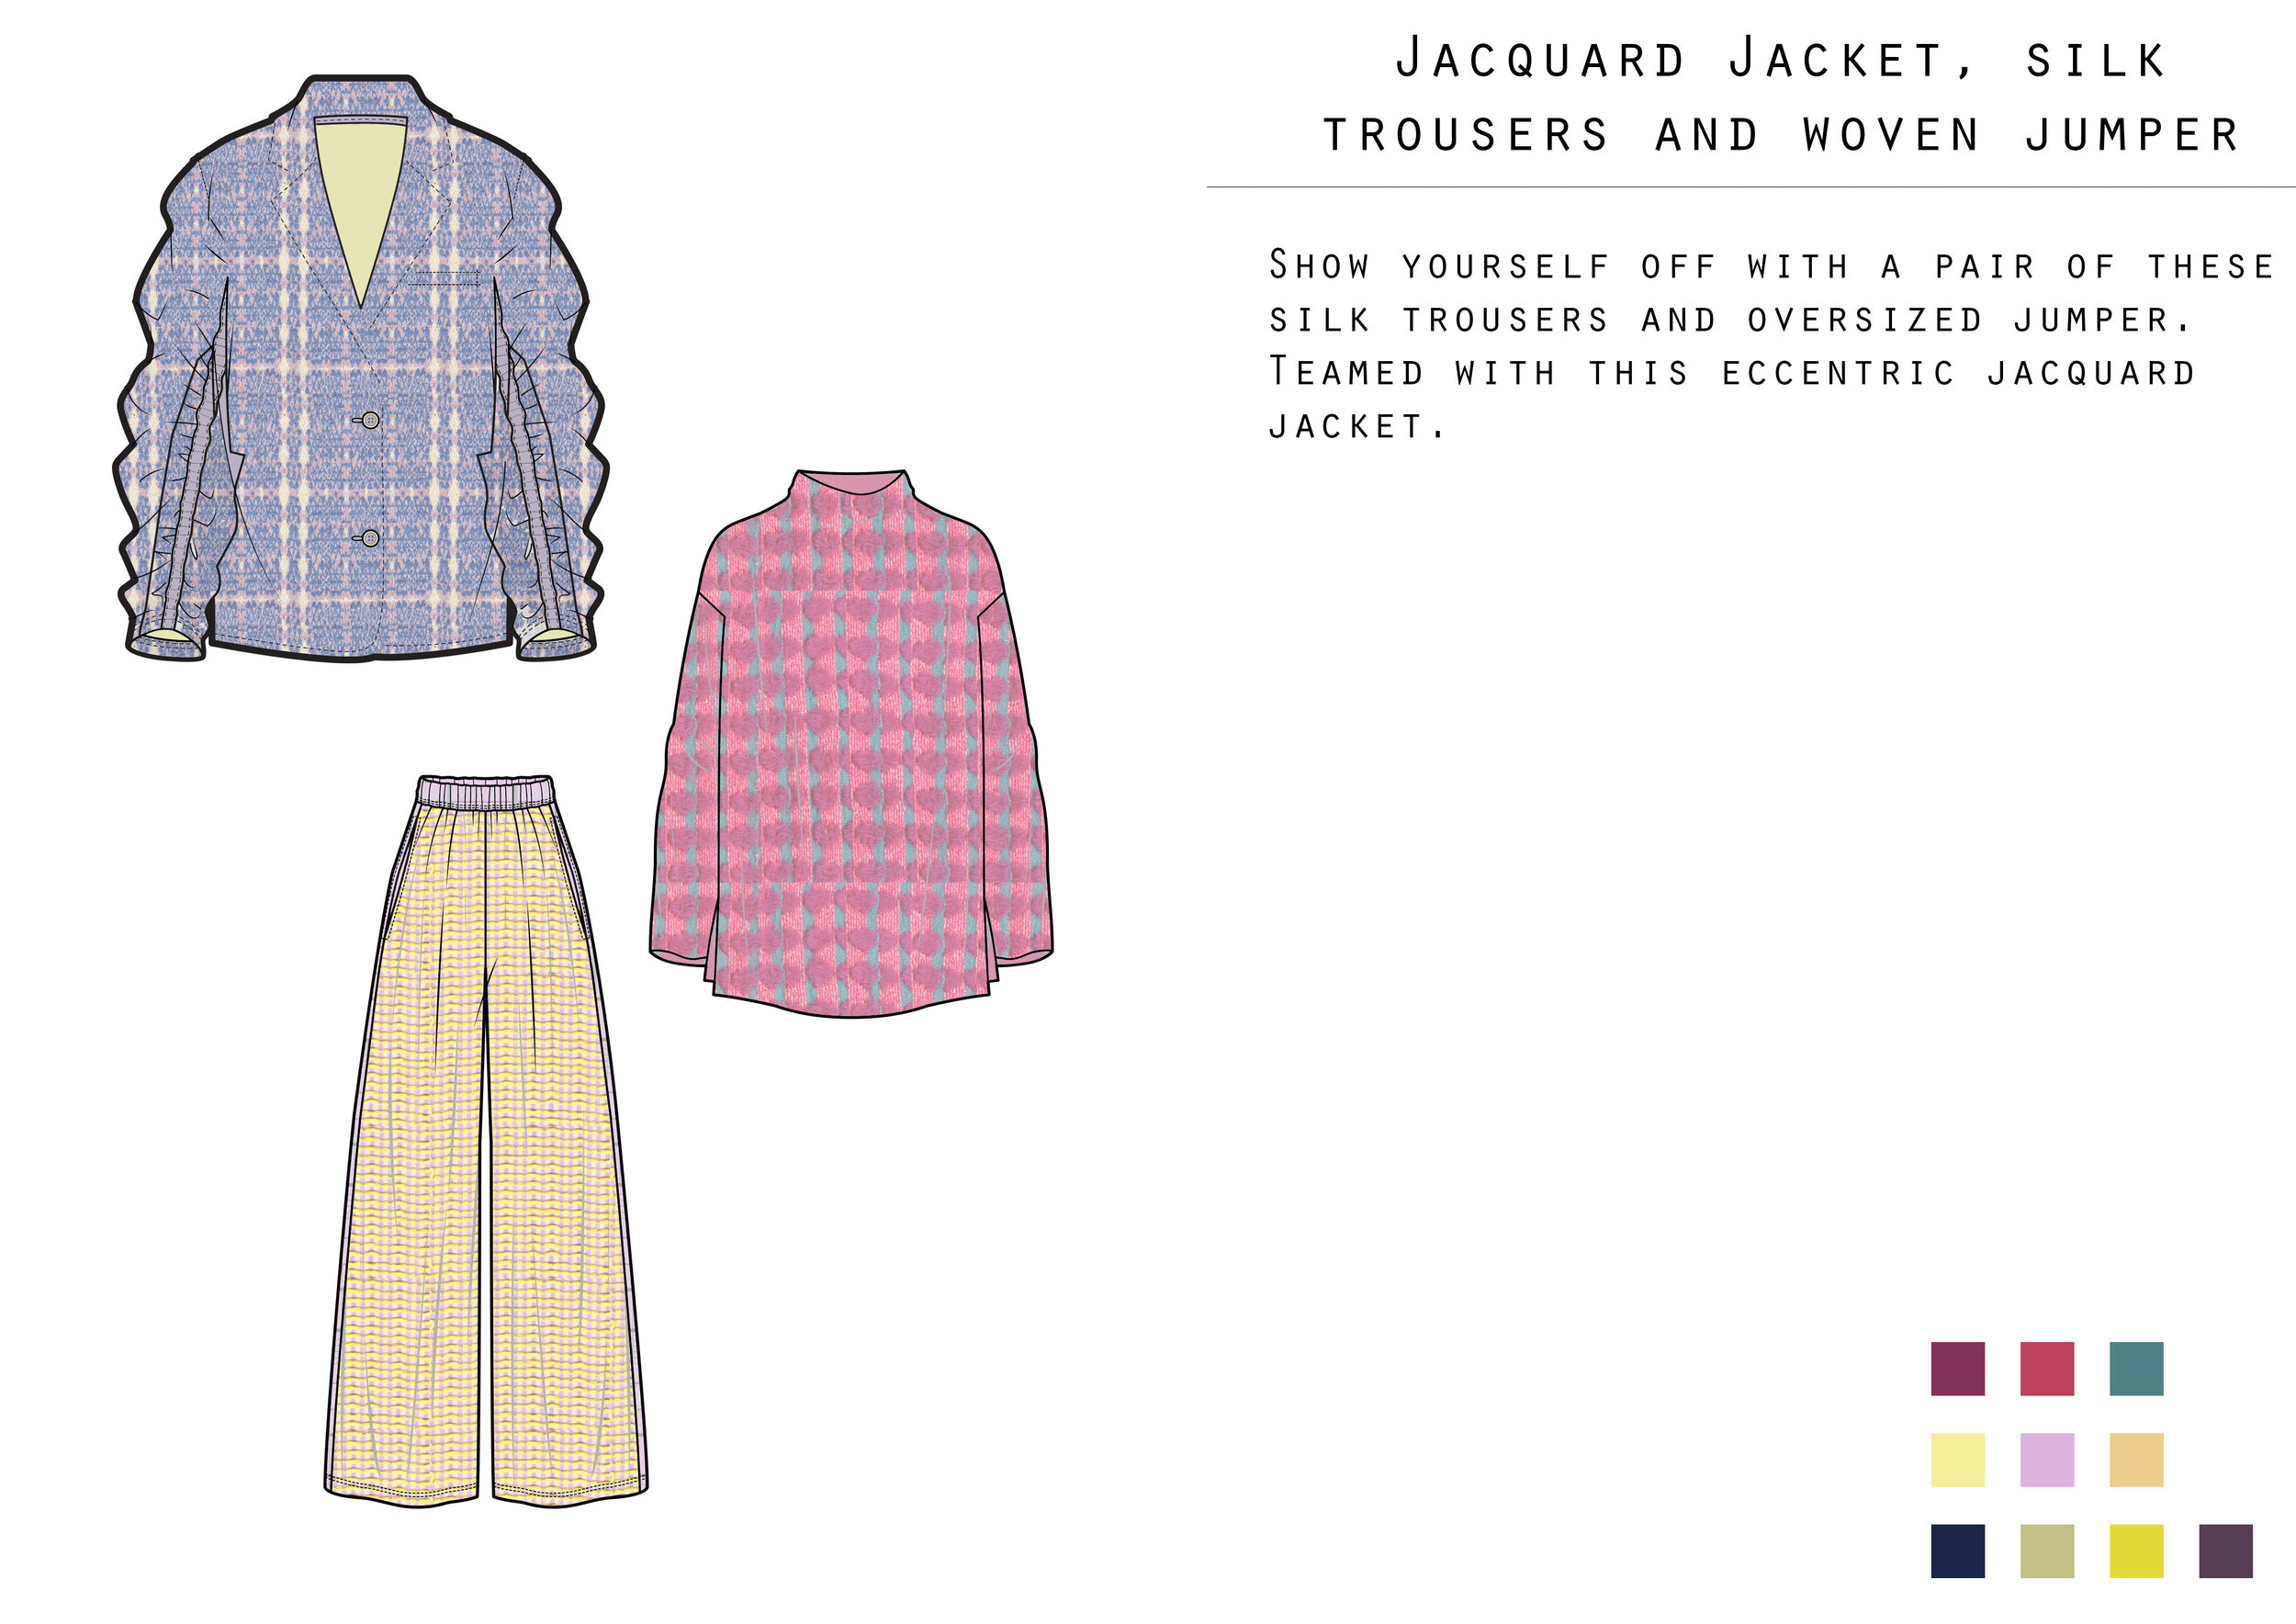 jacquard jacket and trousers.jpg